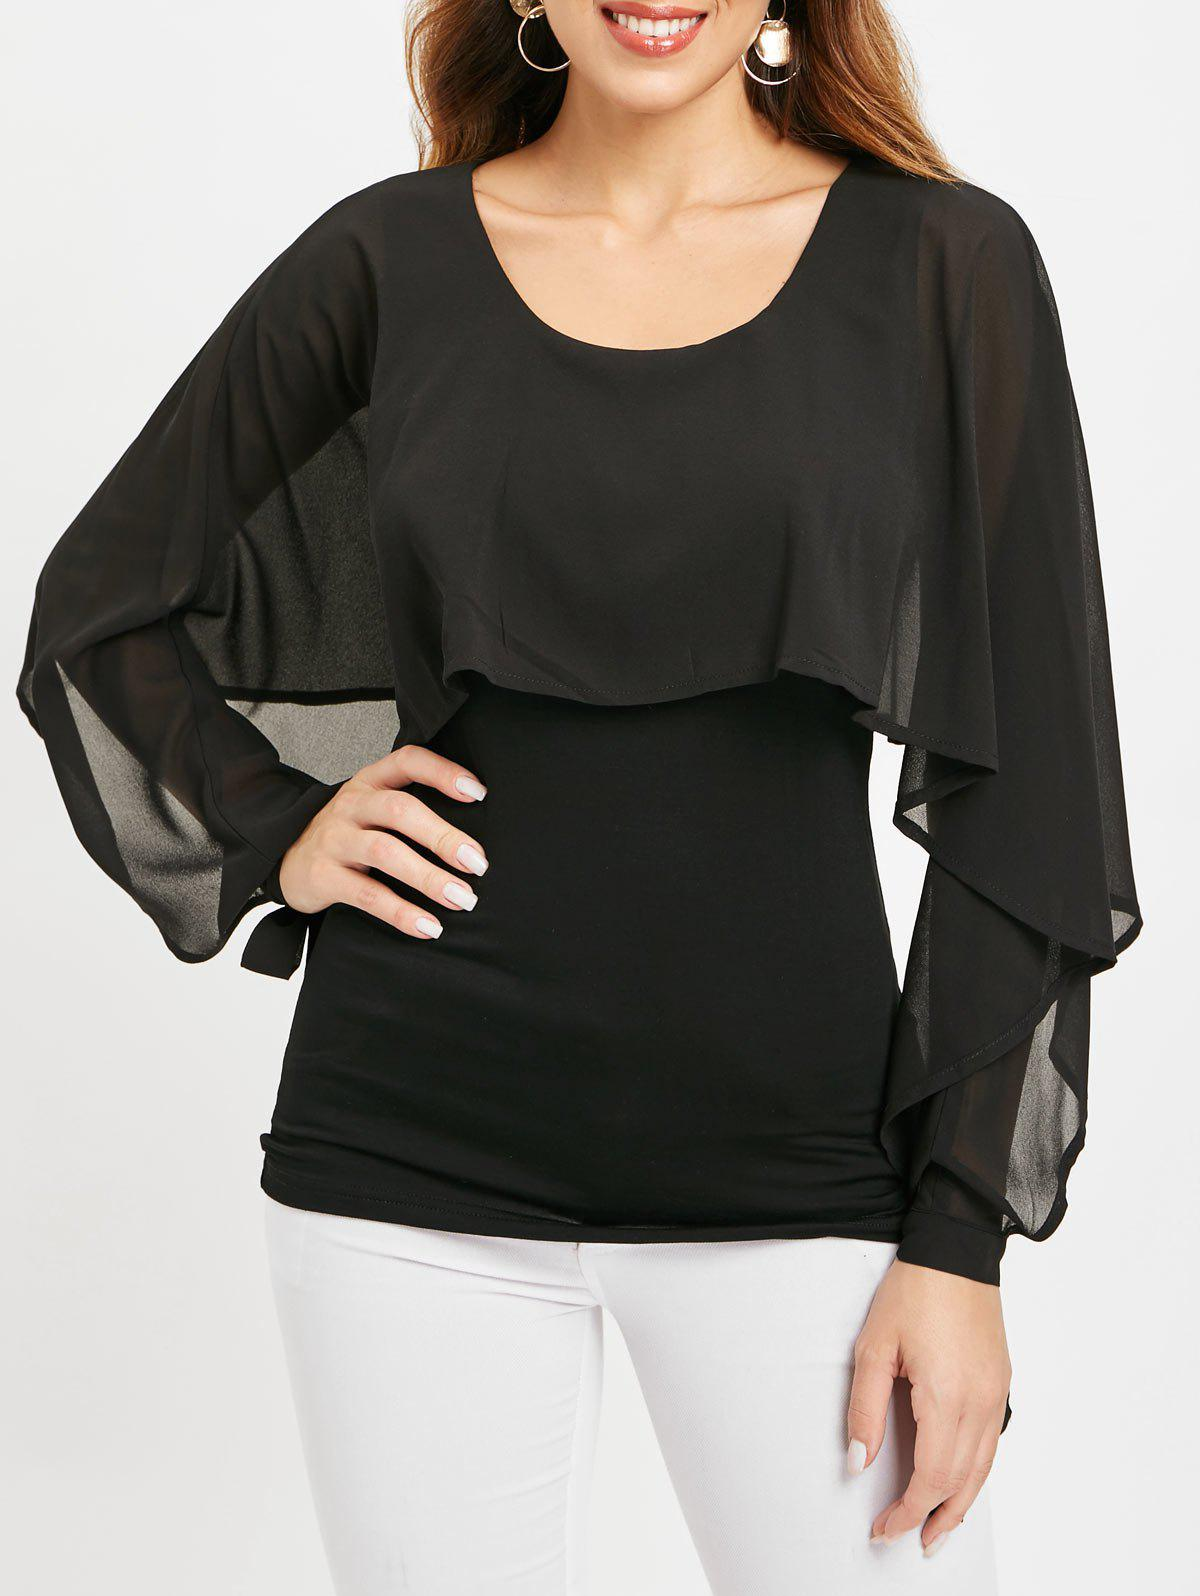 Shop Solid Color Capelet Top with Long Sleeve